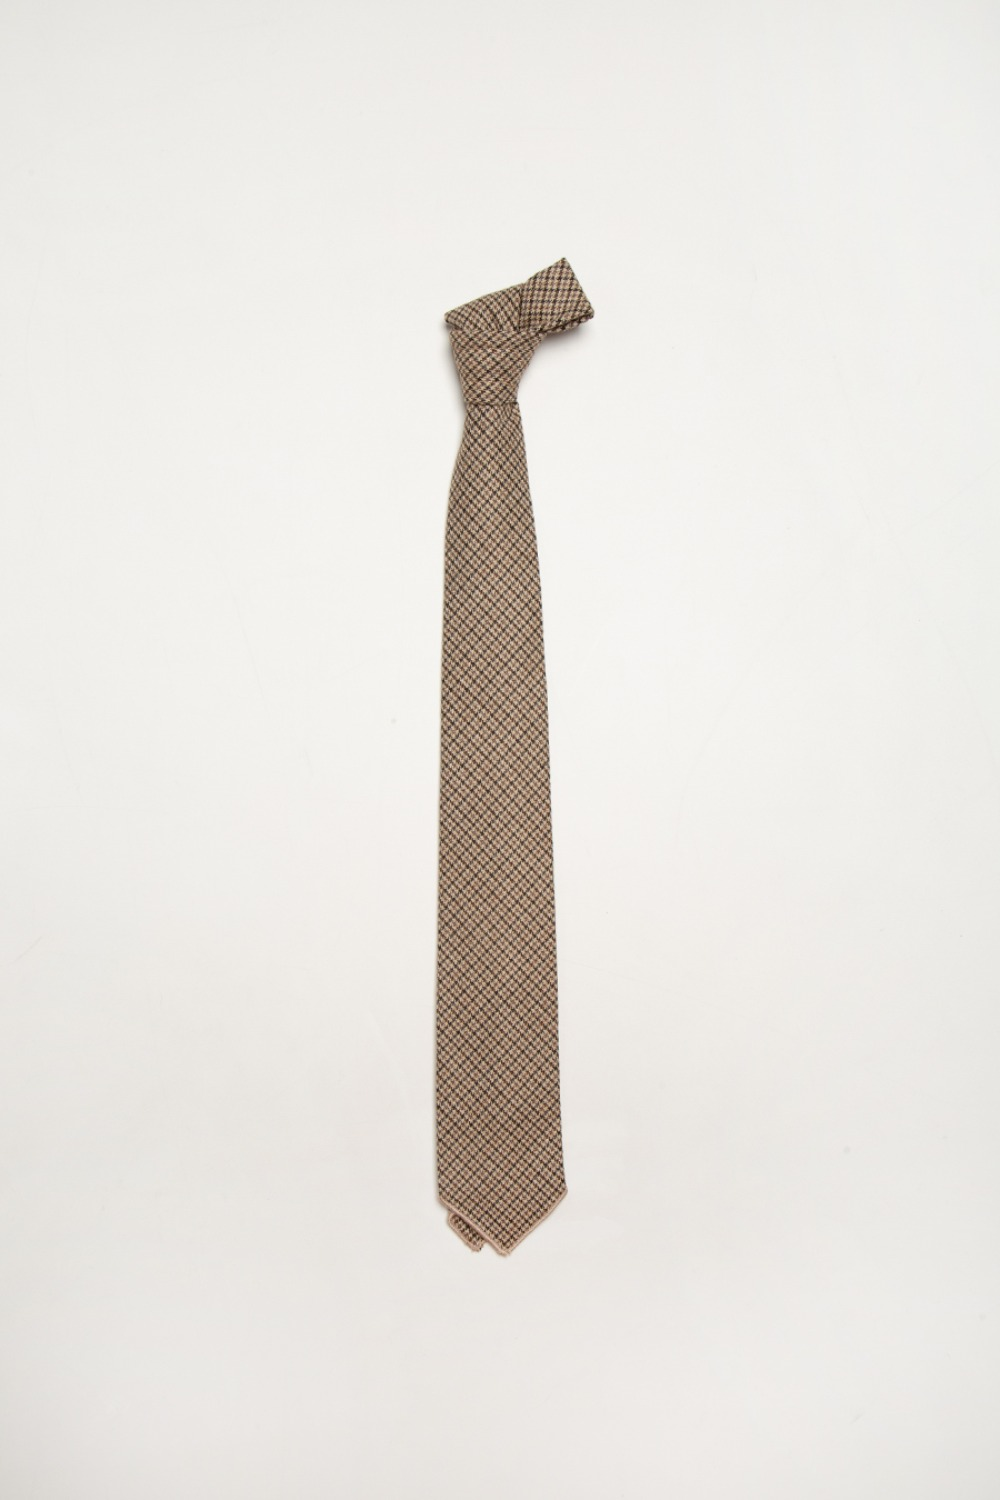 NECK TIE BROWN WOOL POLY GUNCLUB